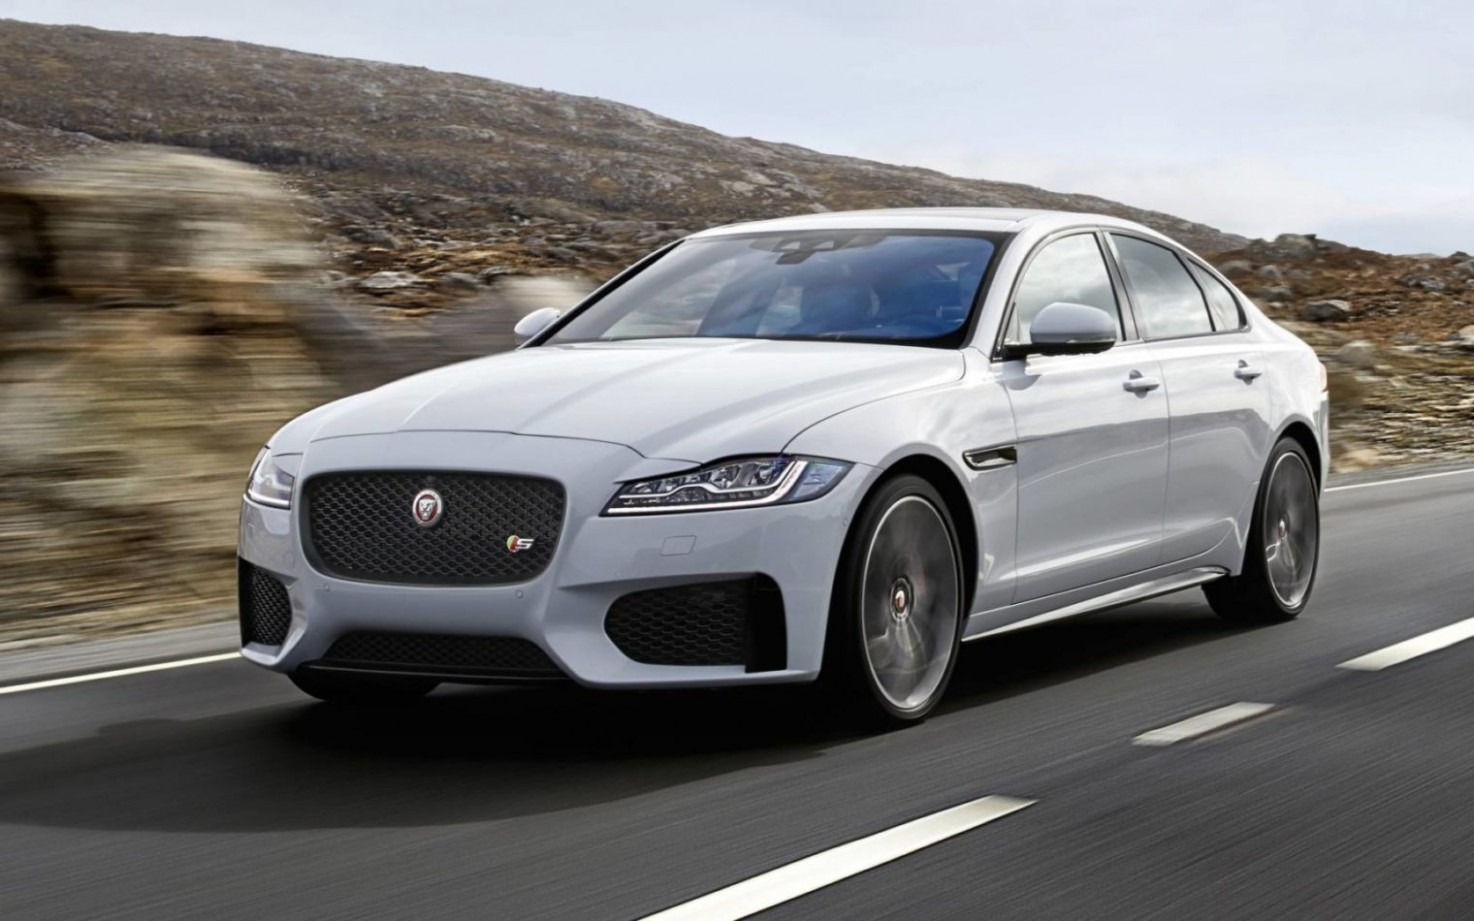 4 Jaguar XF Prices Reduced By 4% In The UK To Boost Sales - Jaguar Xe 2021 Uk